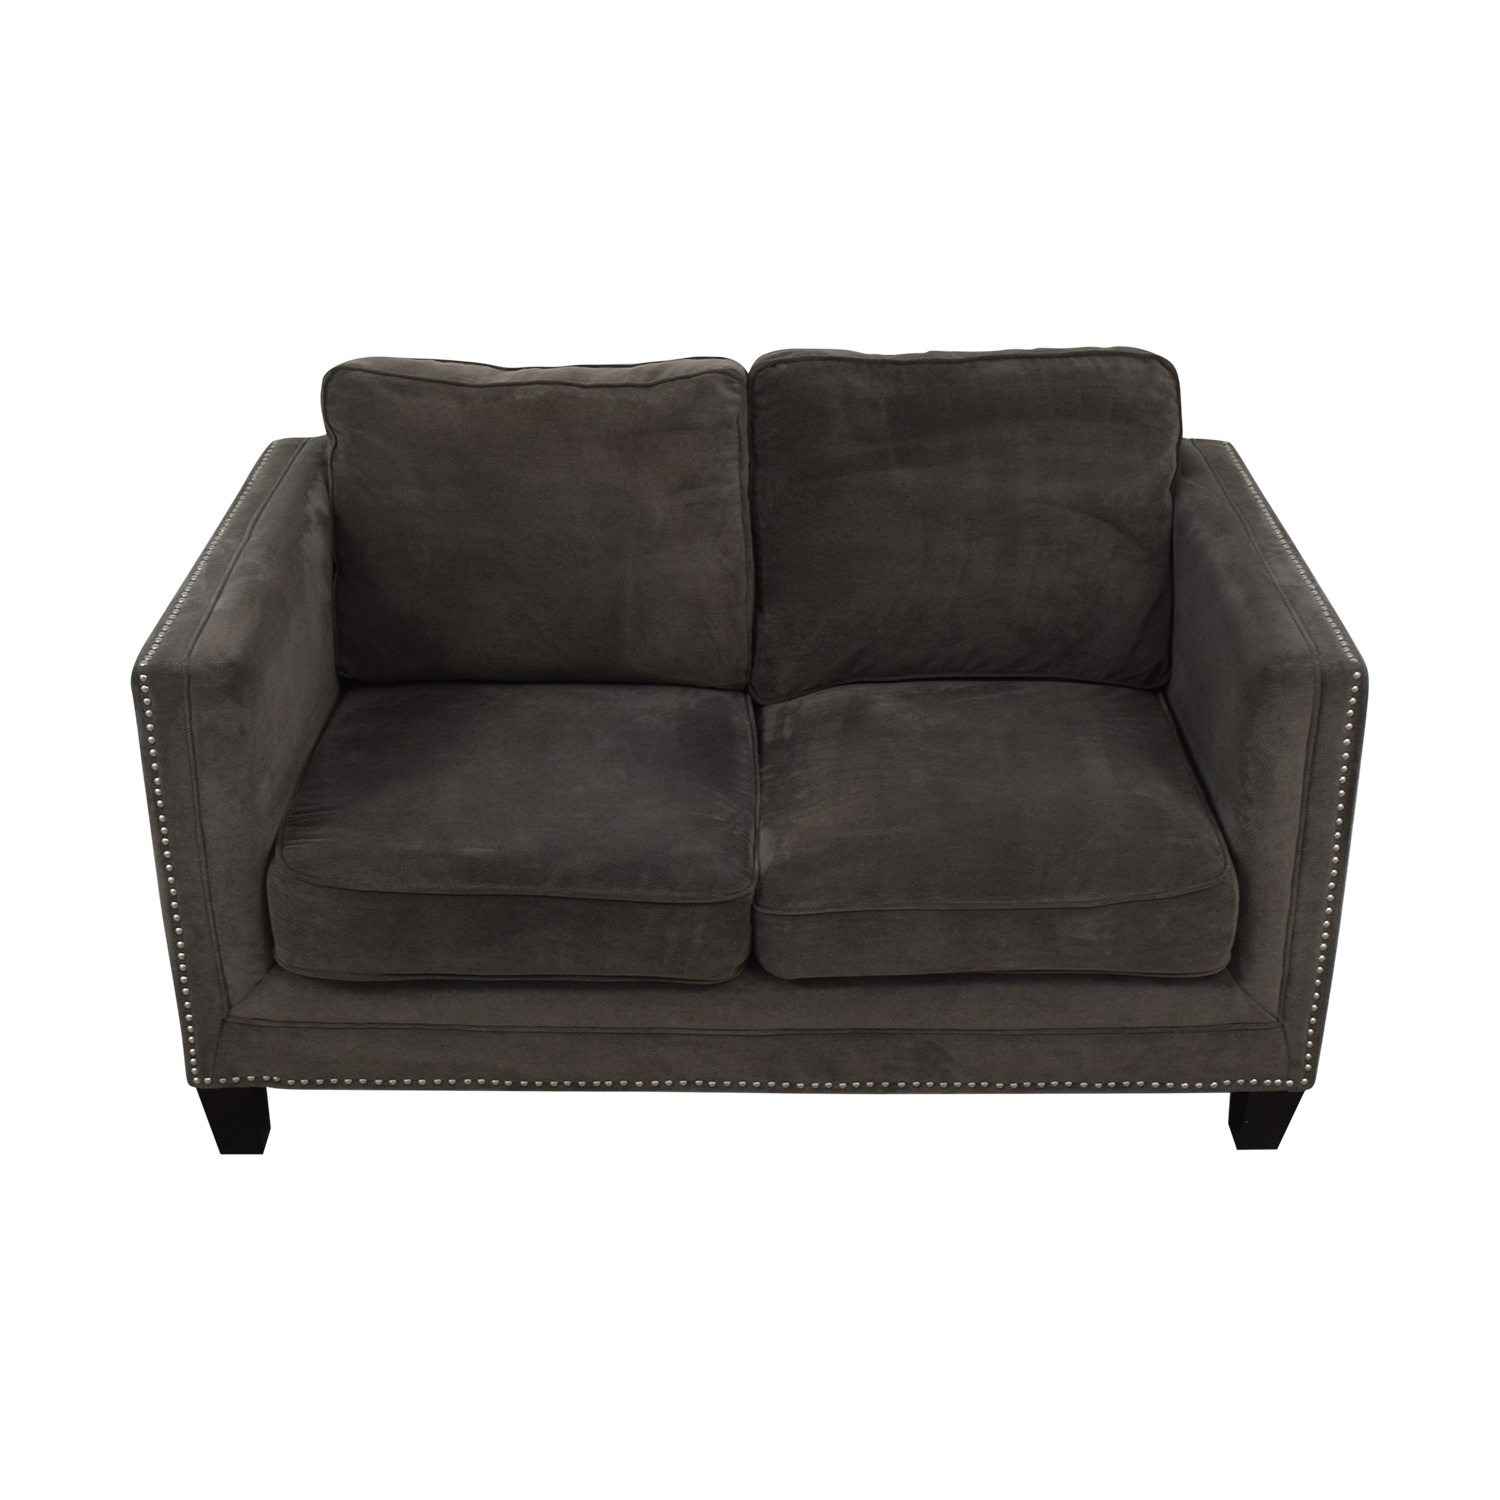 buy Emerald Home Furnishings Carlton Loveseat Emerald Home Furnishings Sofas